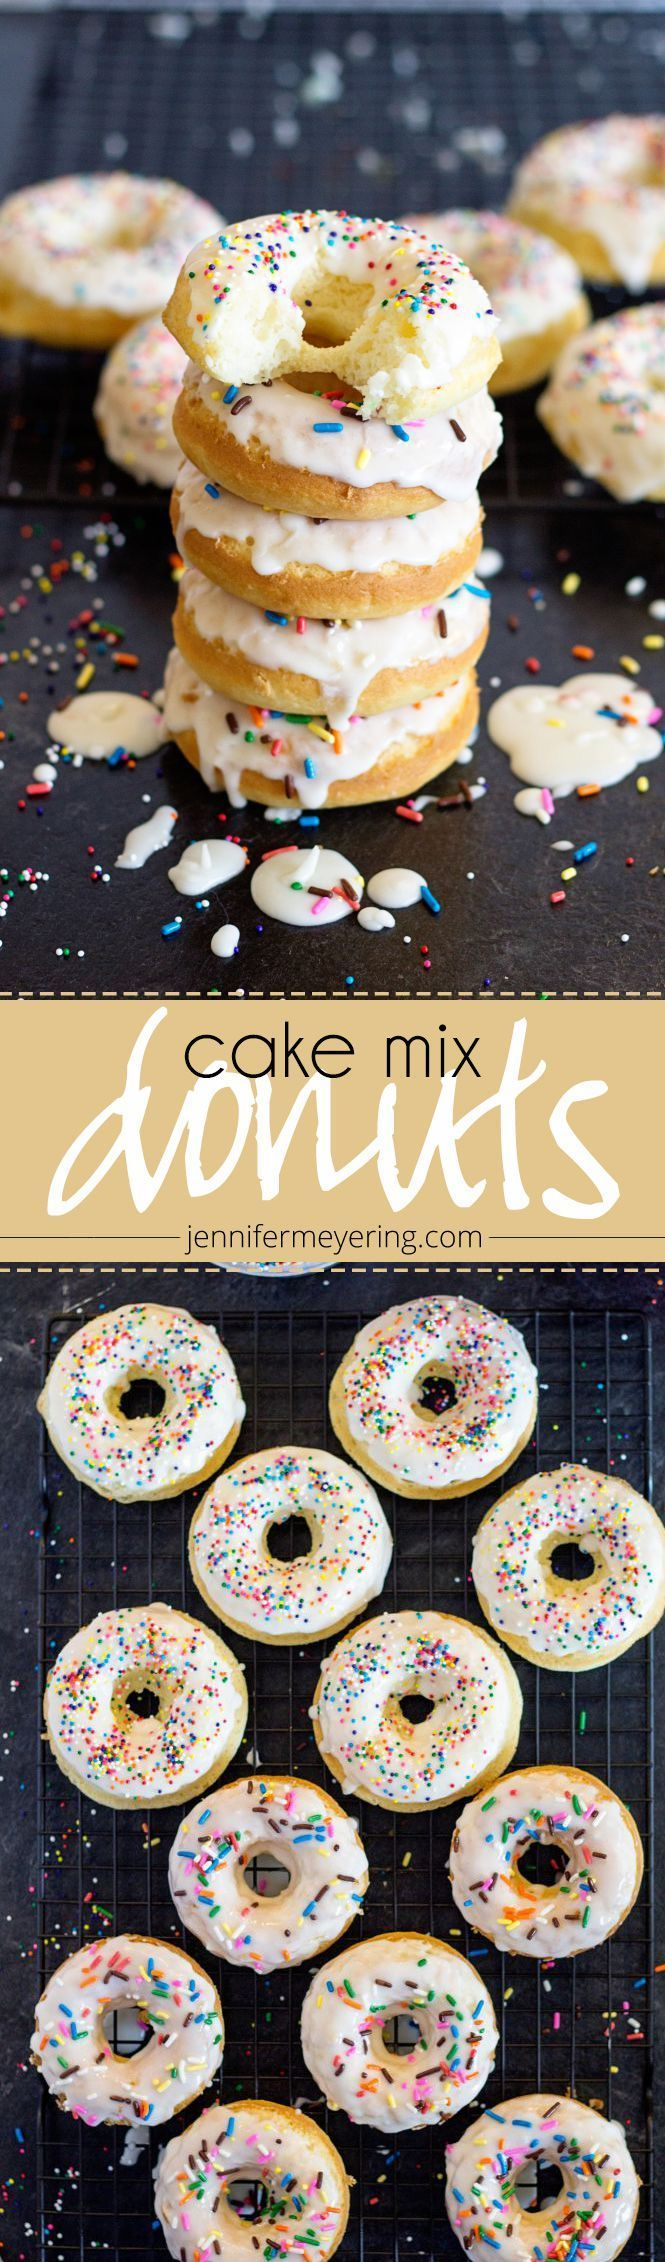 Can I Use Boxed Cake Mix For Donuts